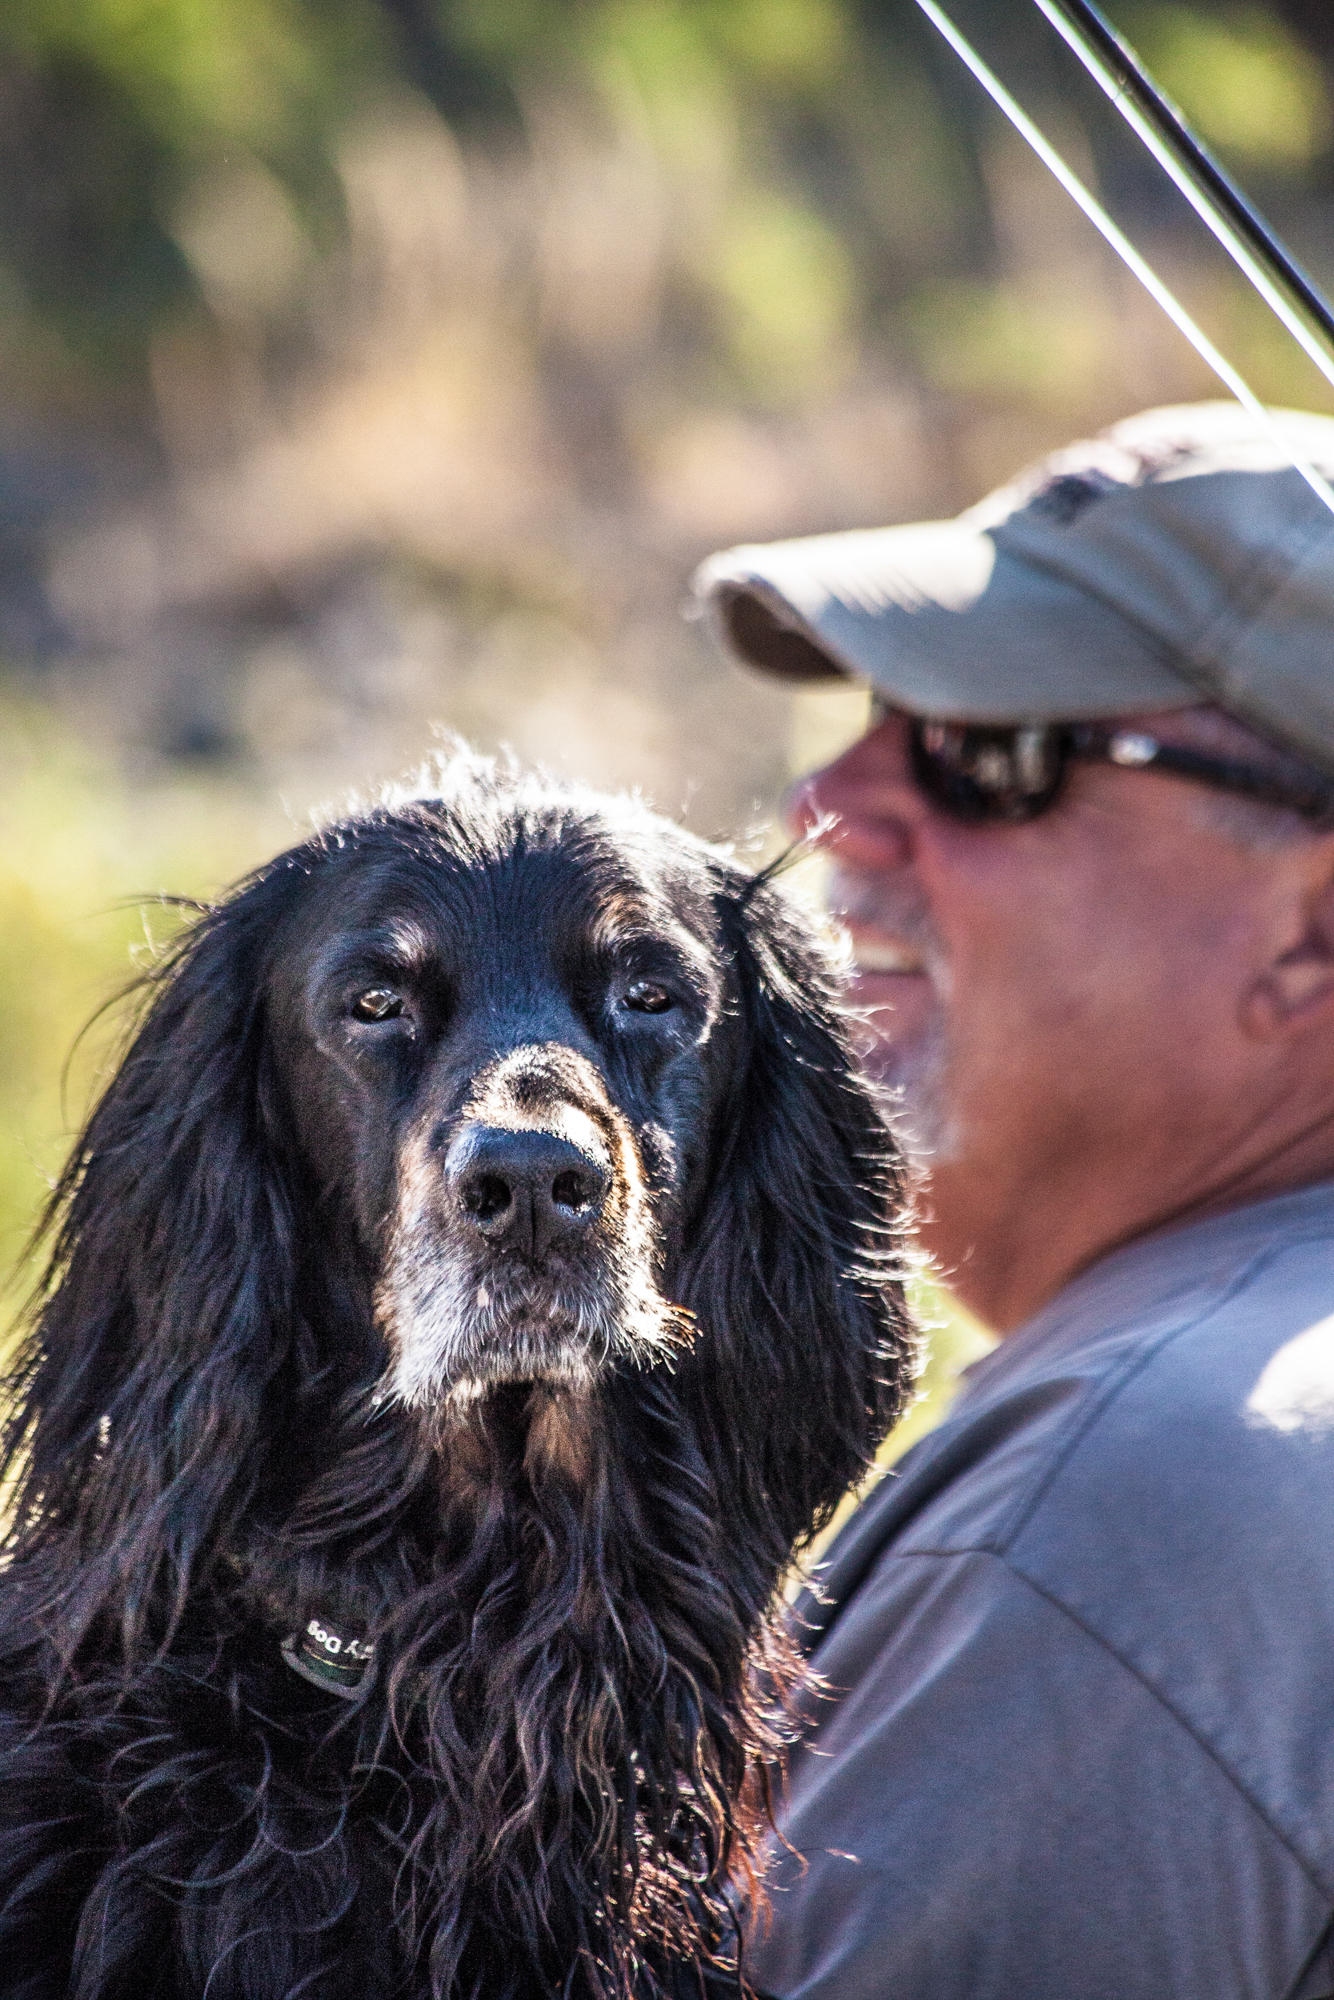 Watcher in the boat. Otis keeps a keen eye while his owner, guide Art Newman, relaxes in the drift boat.